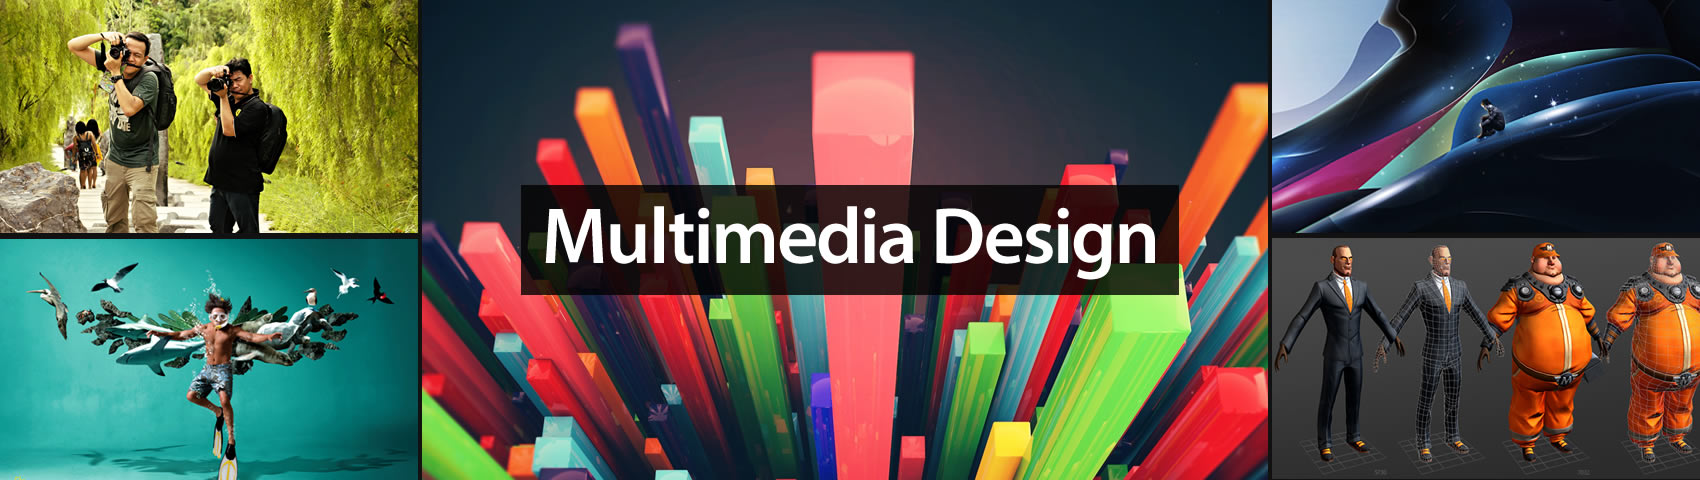 dissertation help interactive multimedia With more than fifteen years experience in cd and web-based interactive multimedia, instructional design, patient-education kiosks and more recently, scorm-compliant elearning courseware, we have the talent to help your project realize its full potential.